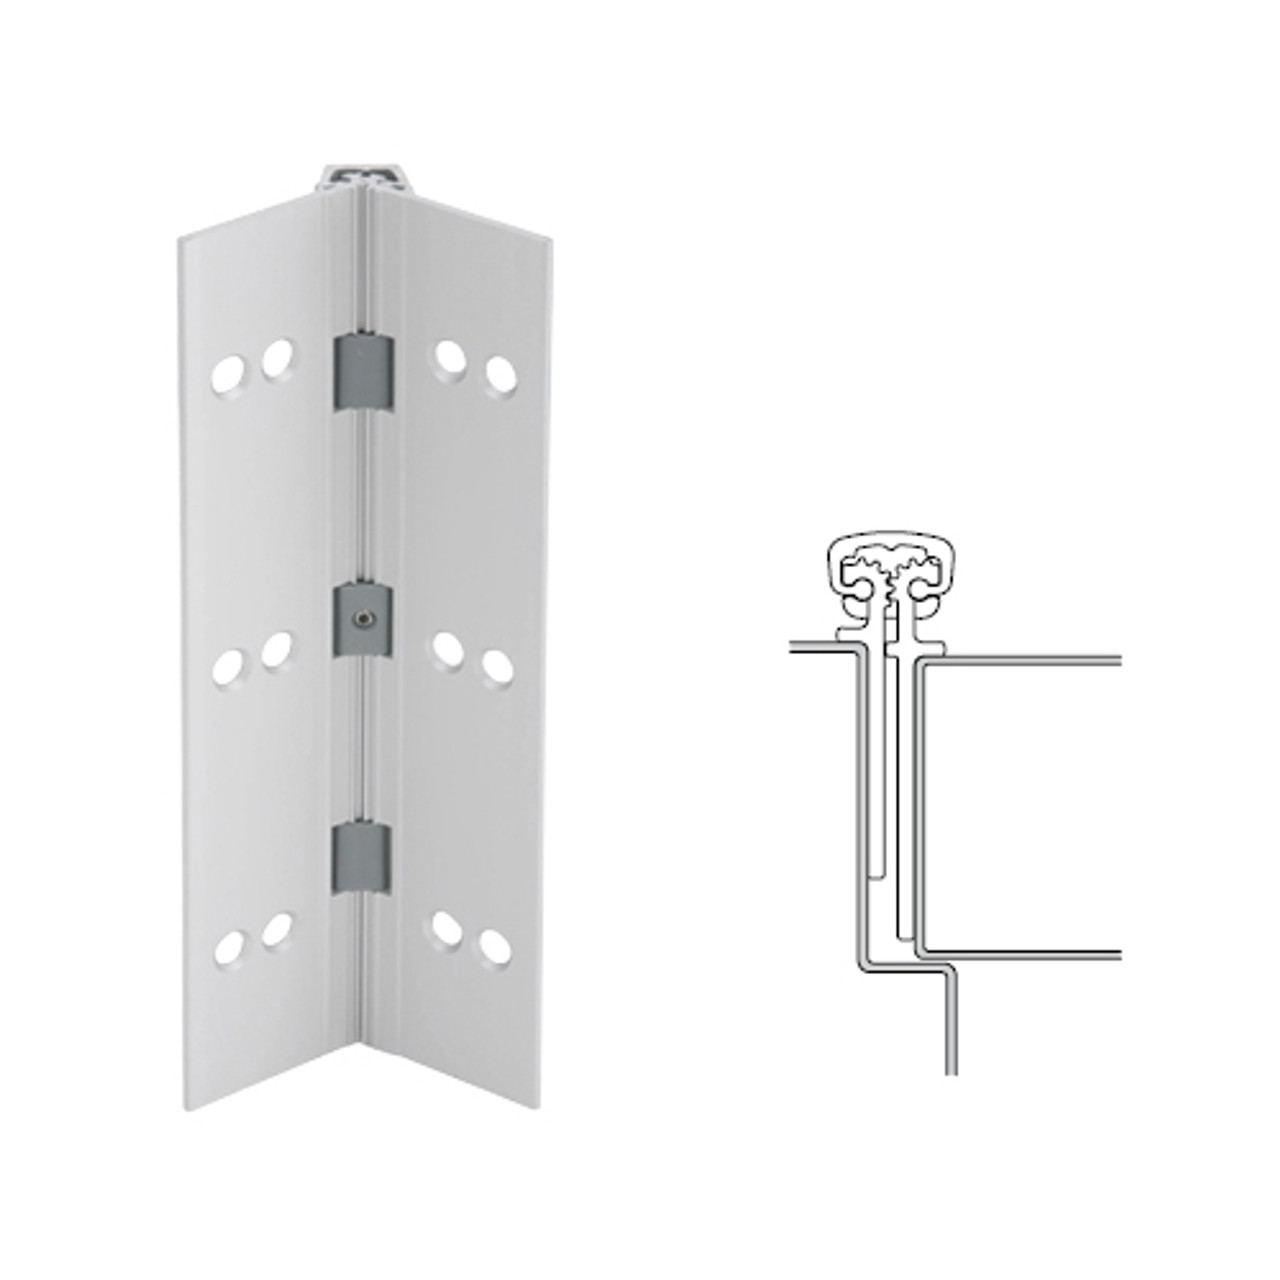 026XY-US28-85-TEKWD IVES Full Mortise Continuous Geared Hinges with Wood Screws in Satin Aluminum